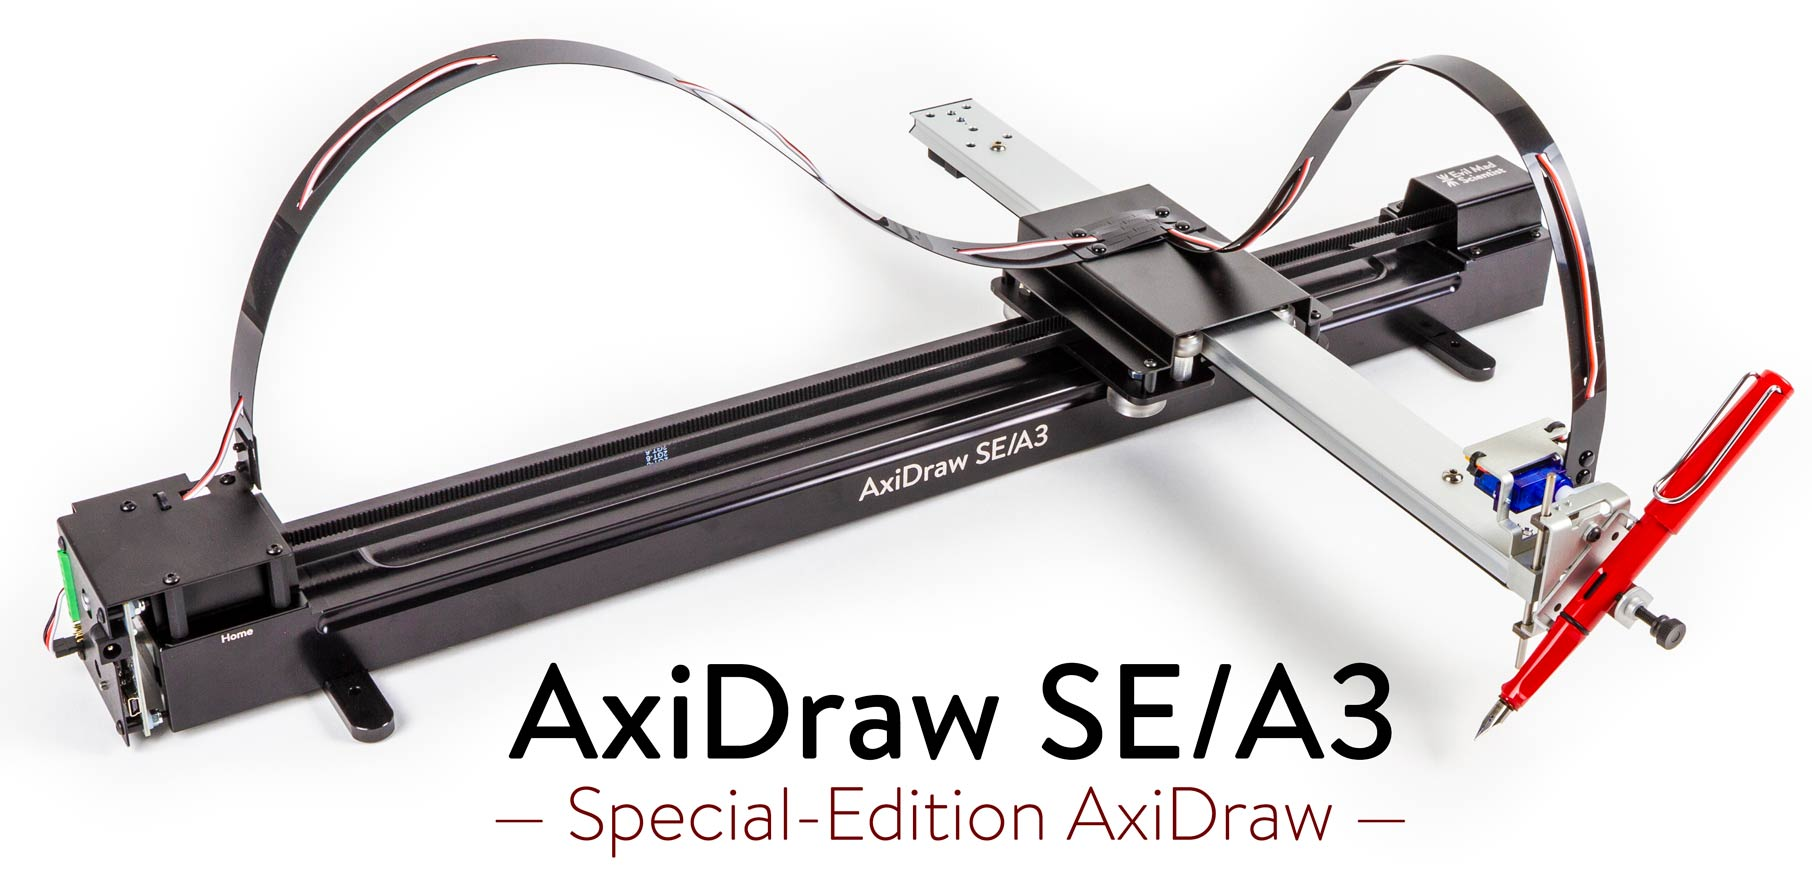 The AxiDraw SE/A3 Drawing Machine